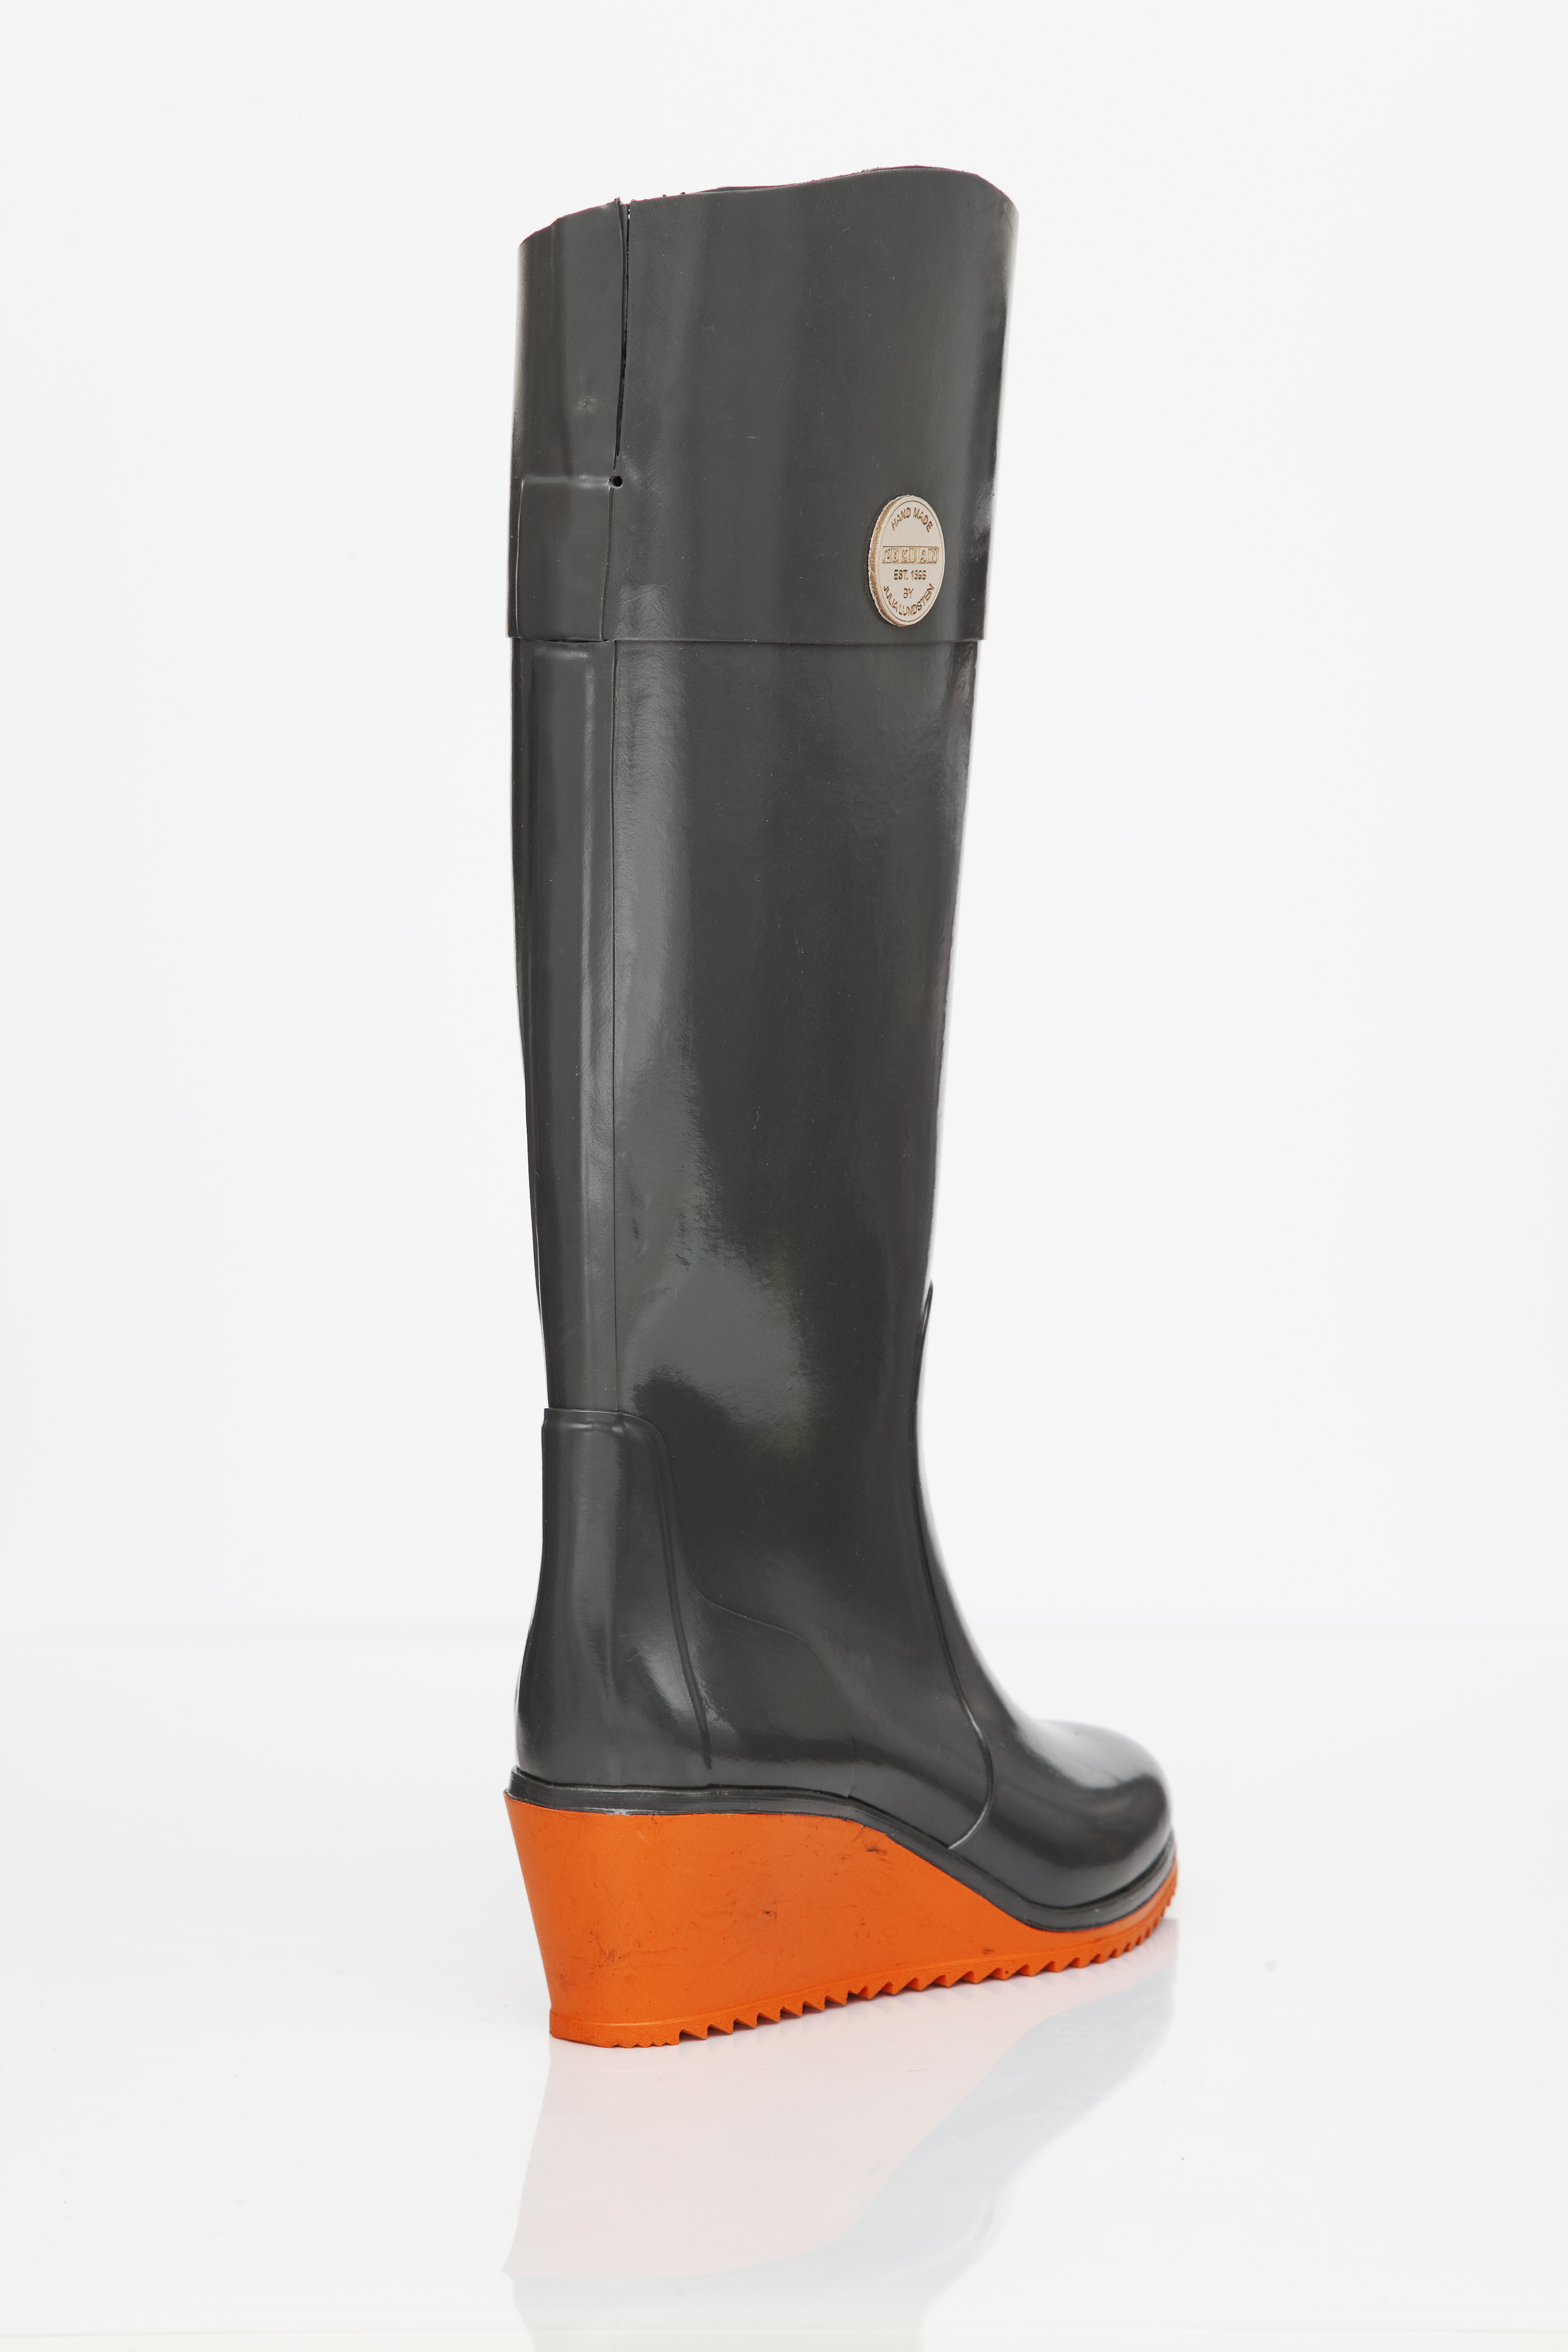 FINSK NOKIAN 118-22 KNEE HIGH PULL ON WEDGE BOOTS BACK